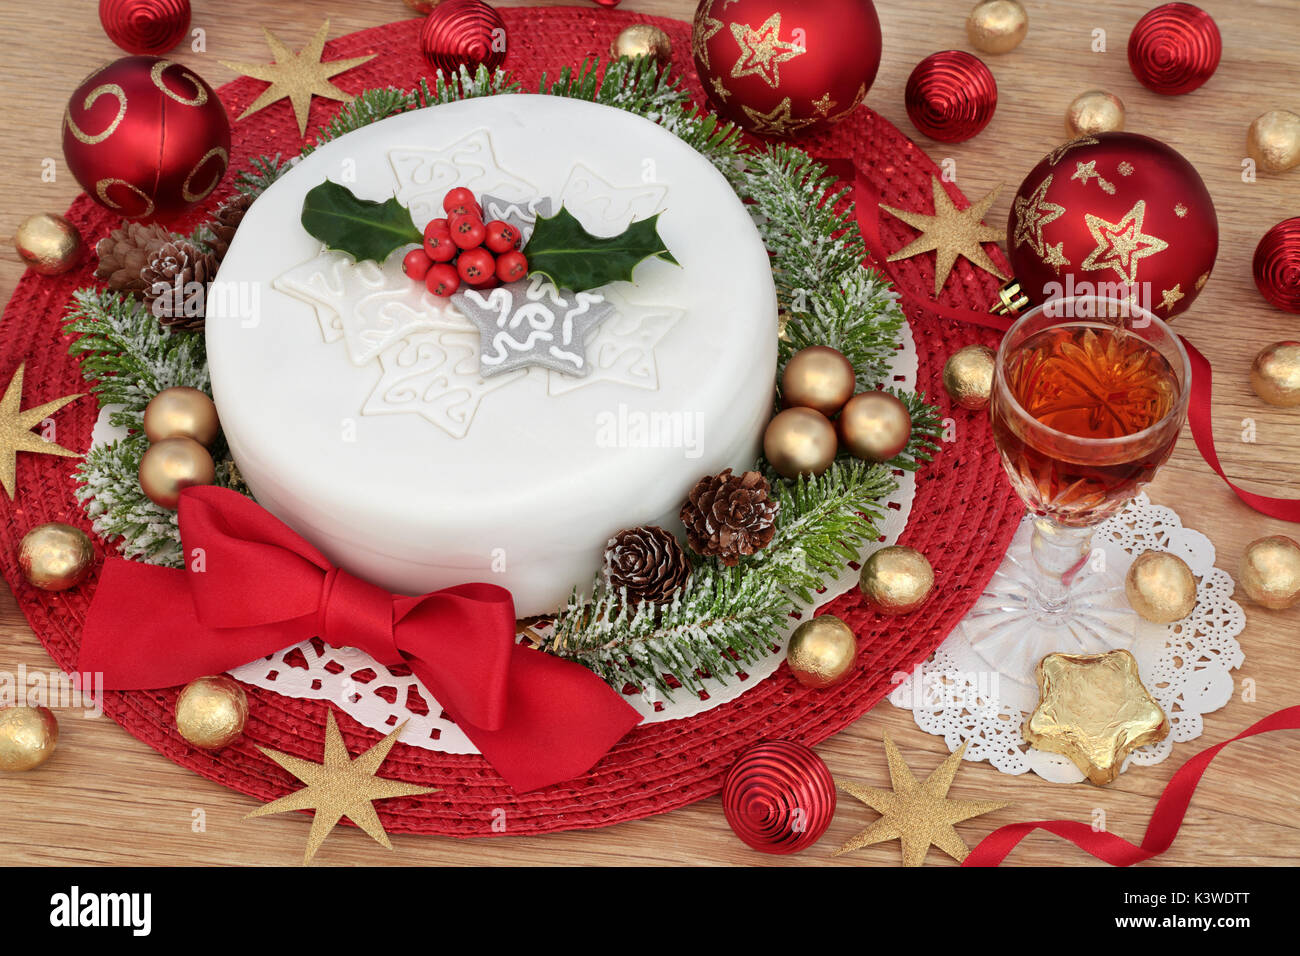 Iced Christmas Cake Mit Glas Sherry Holly Tanne Rot Und Gold